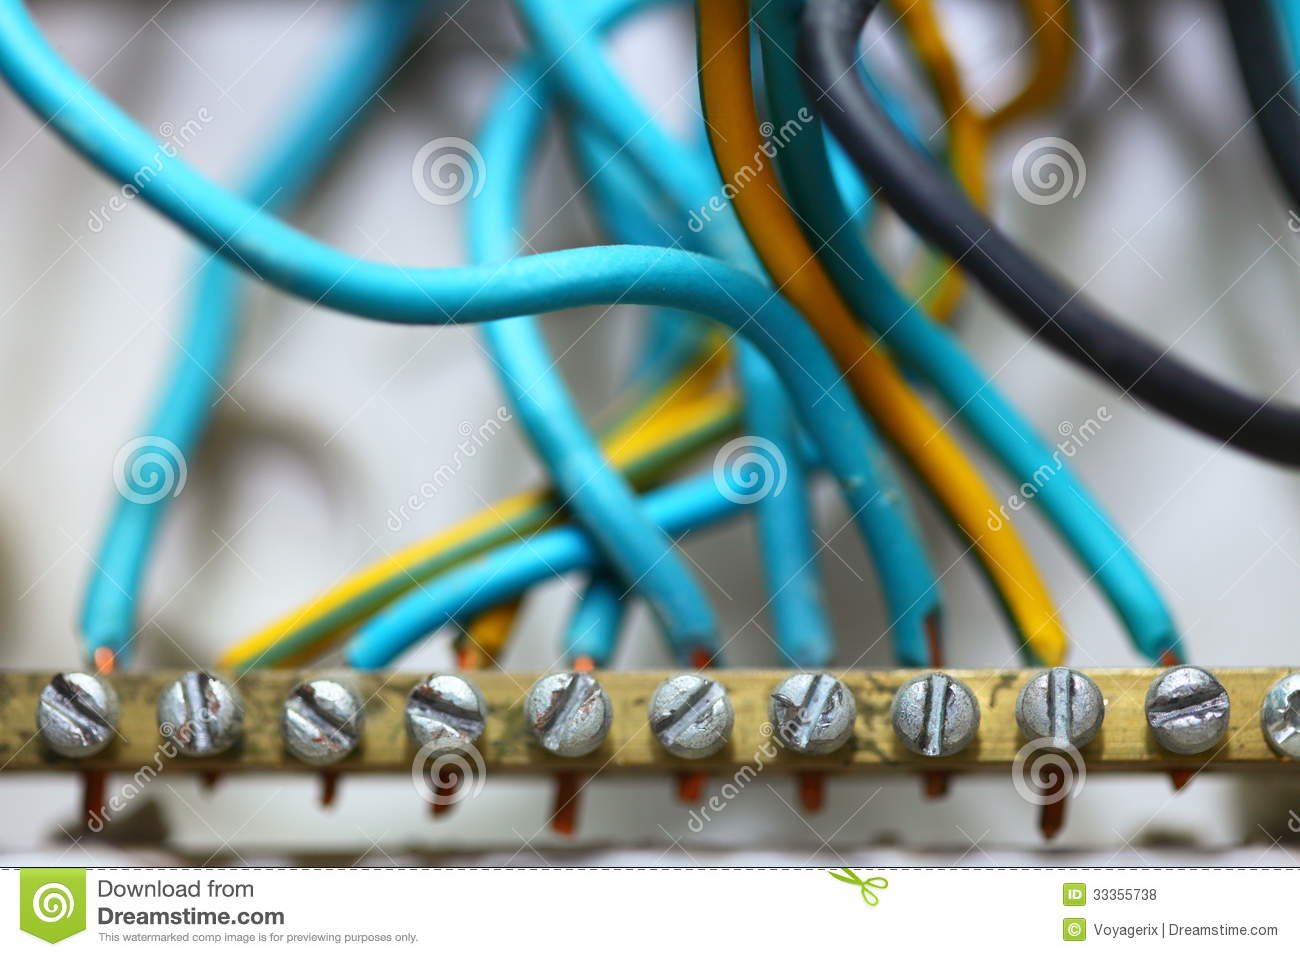 Electrical Wires At Construction Site Stock Photo - Image of wiring ...